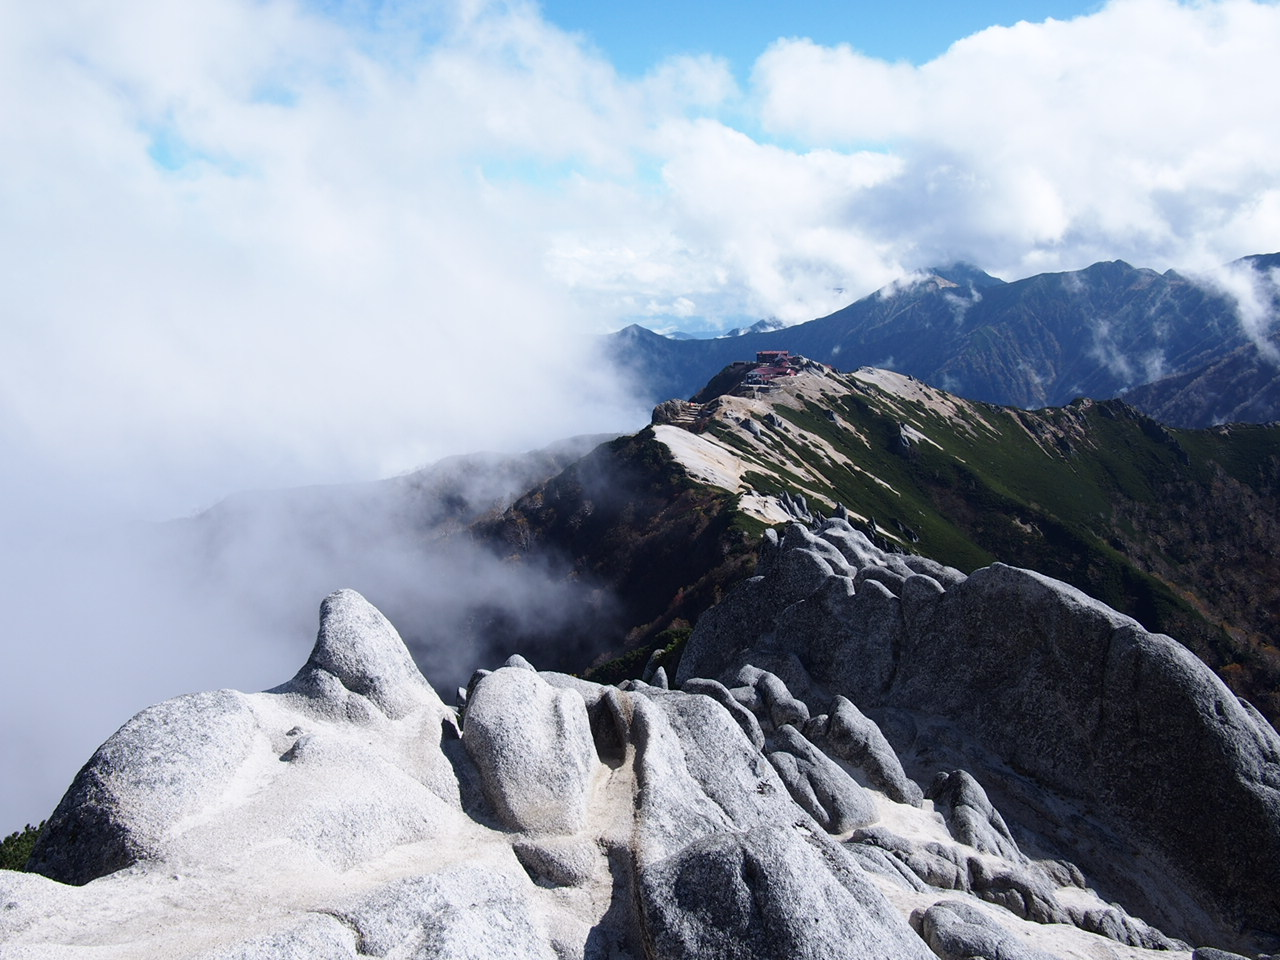 Enzanso as seen from the summit of Mt.Tsubakurodake - Copyright: Life-Sparring.com